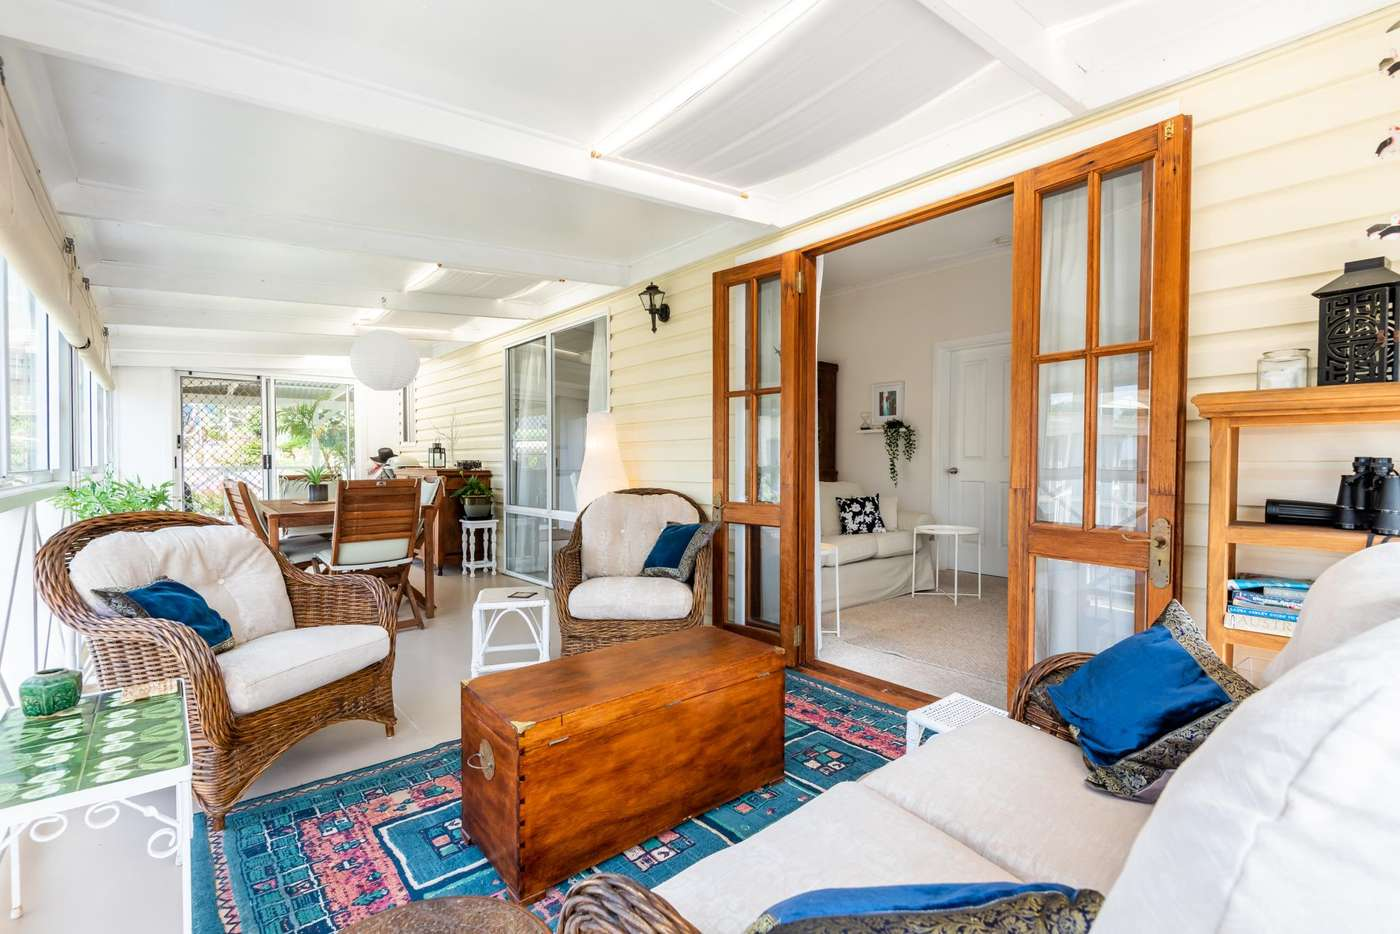 Sixth view of Homely house listing, Site 90/8 Hearnes Lake Road, The Pines, Woolgoolga NSW 2456